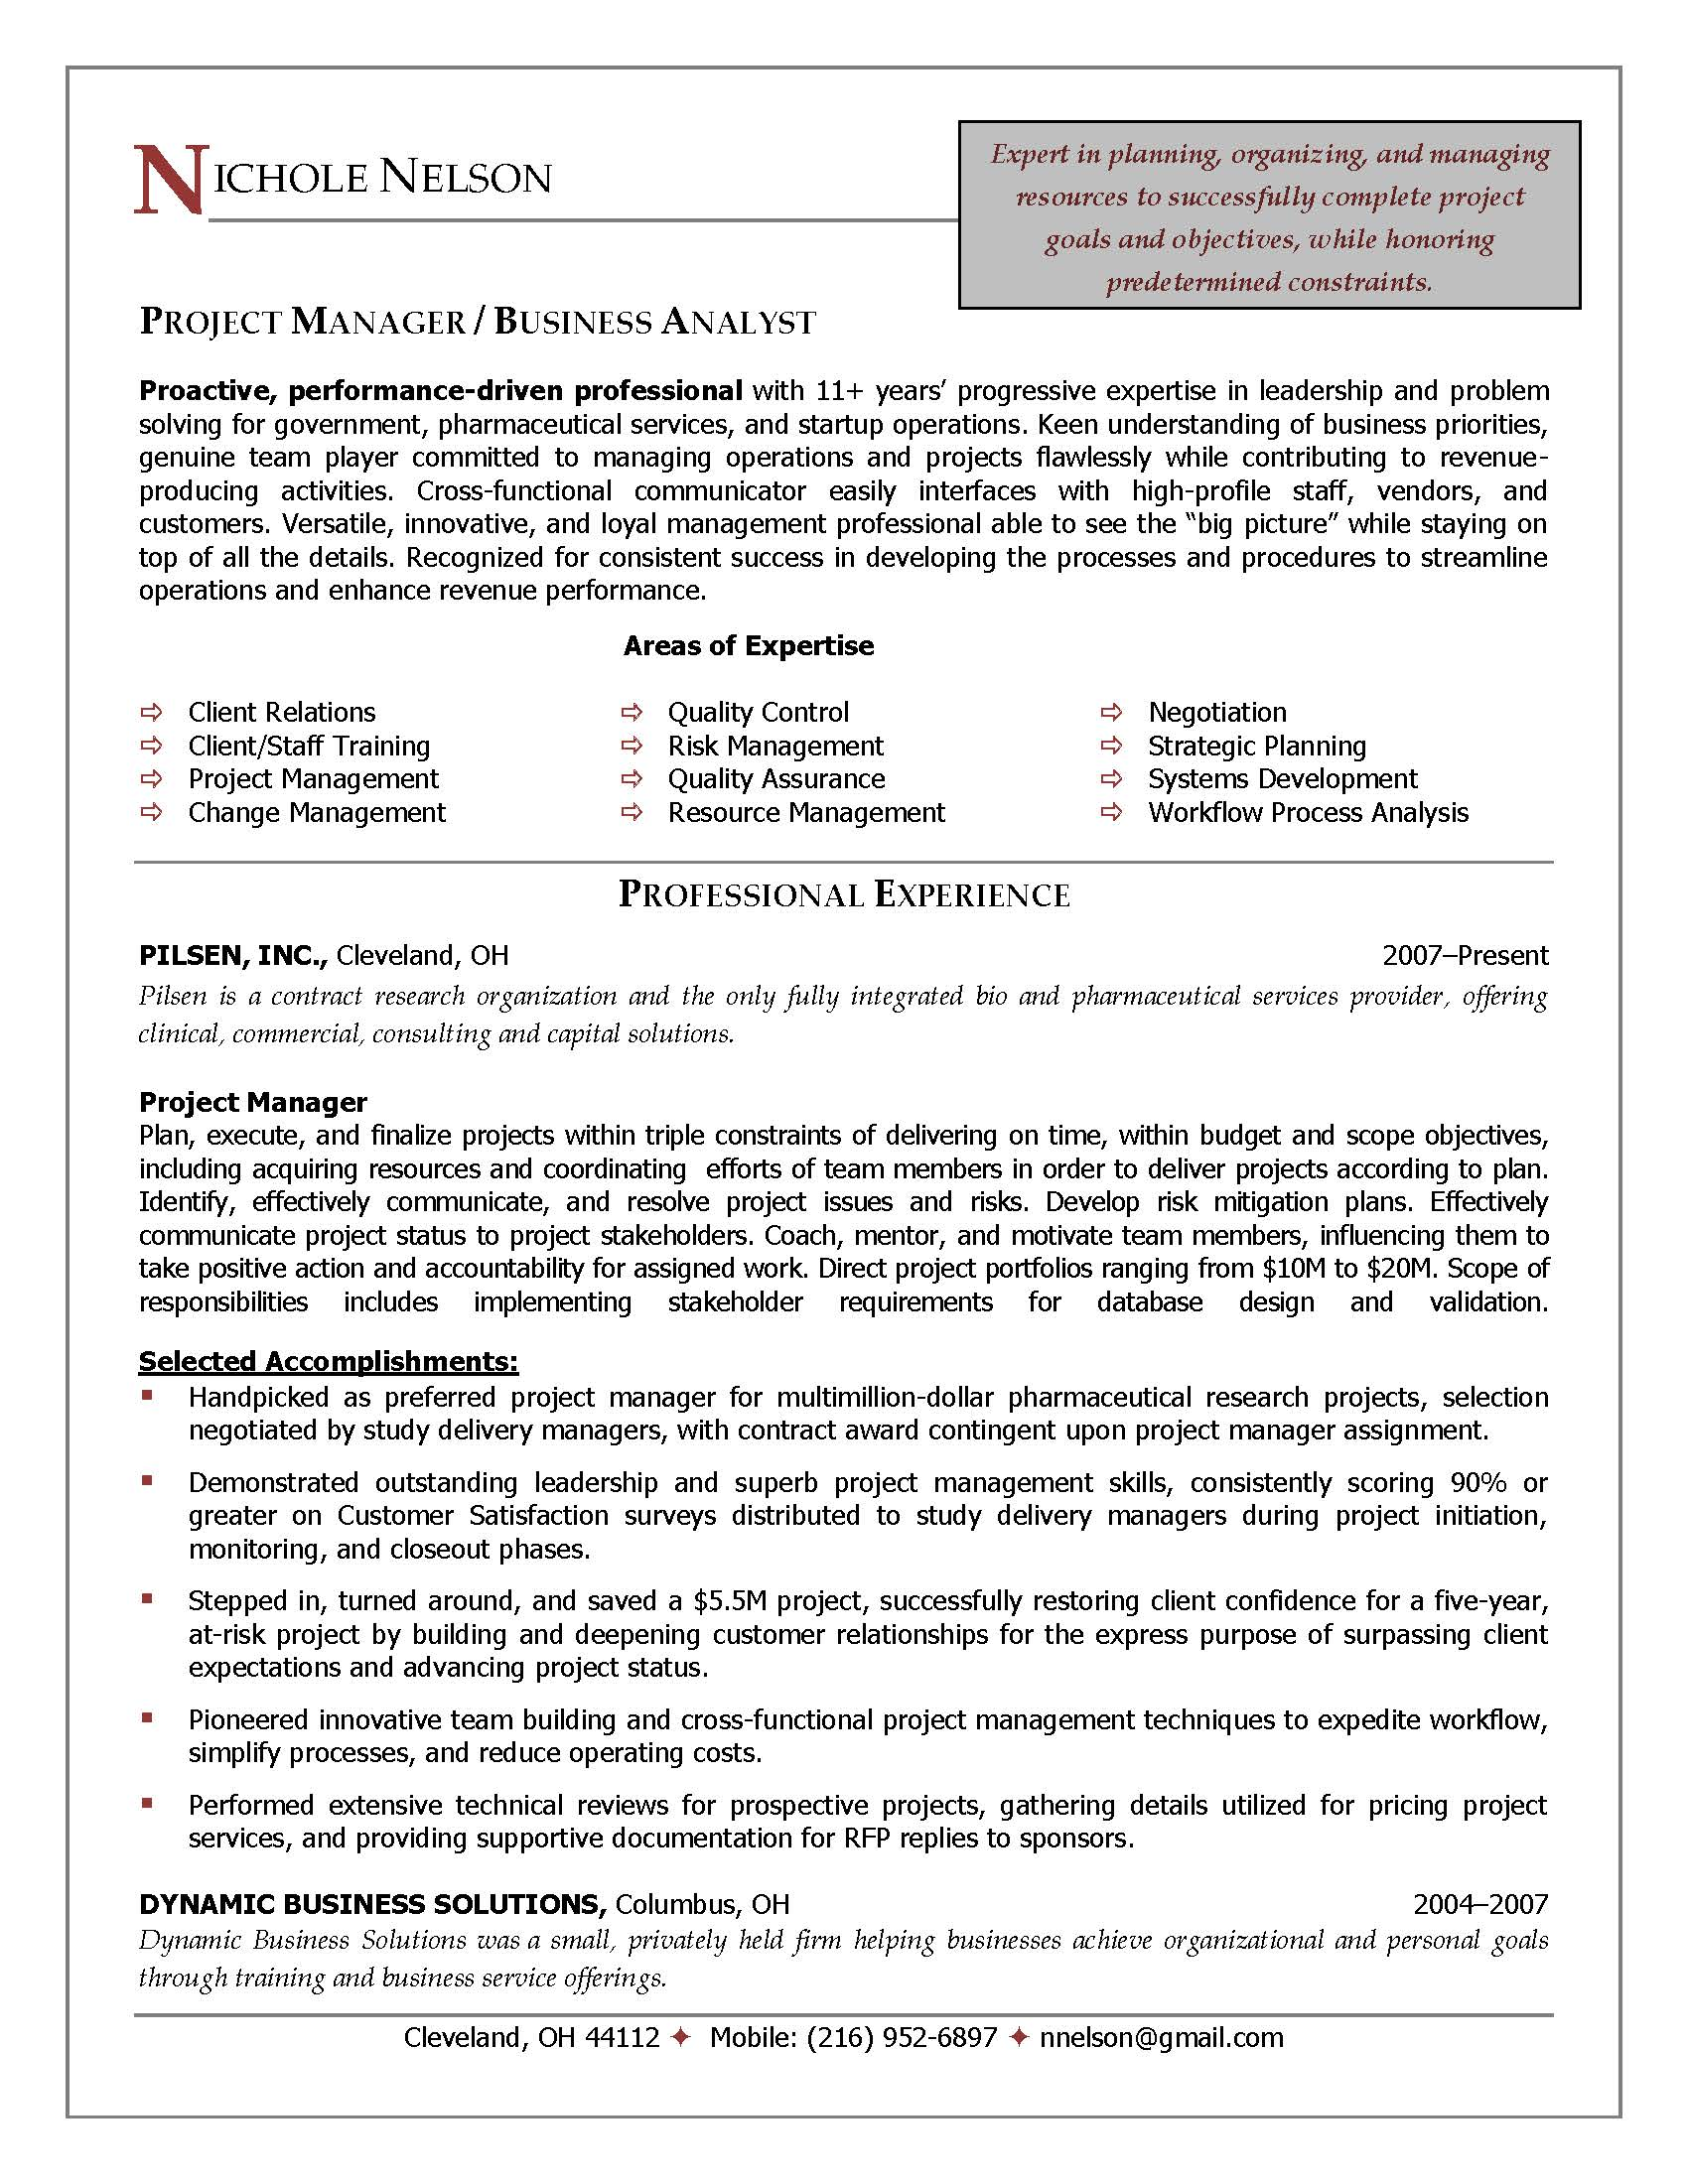 project manager resume sample provided by elite resume writing services - Director Of Information Services Resume